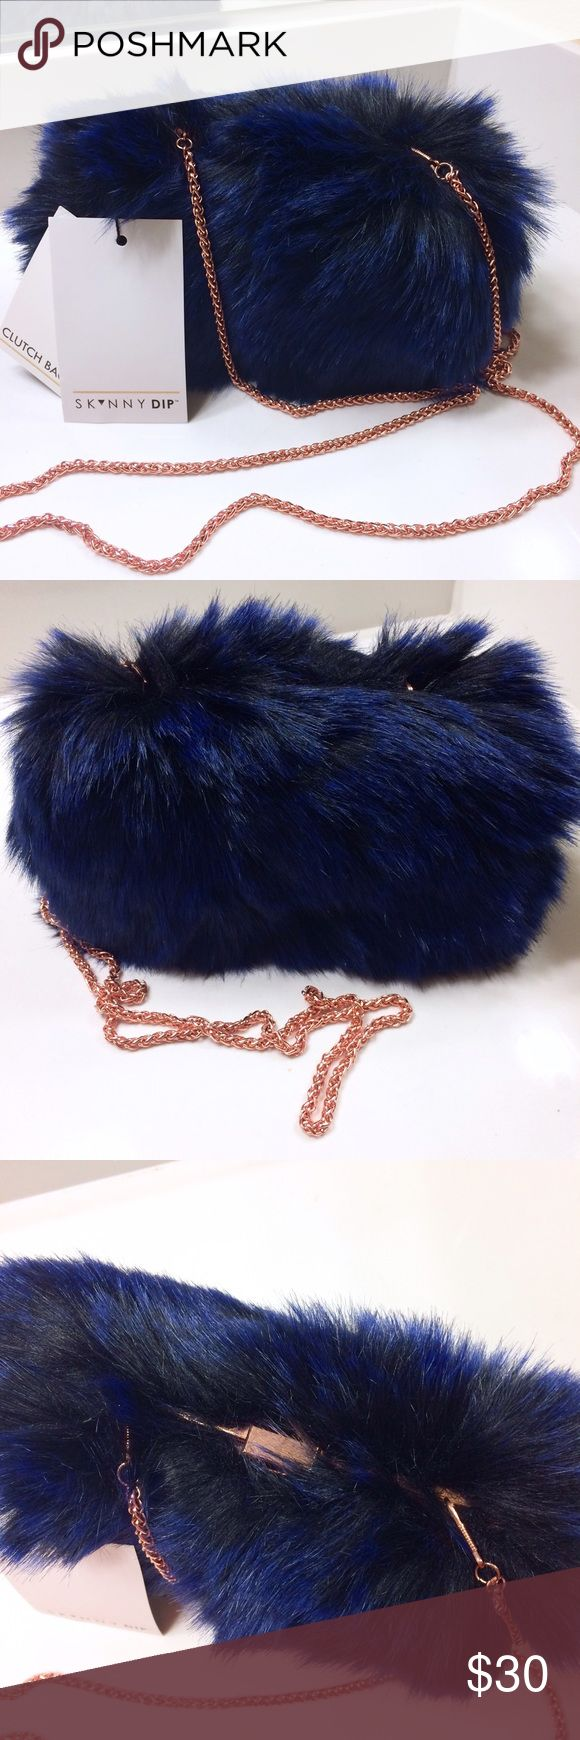 Blue Split Hairs Faux Fur Clutch Evening Bag New with tags! Skinnydip London x Nasty Gal. Comes with detachable rose-gold colored strap. NO TRADES!! 🚫🚫🚫 Skinnydip London Bags Clutches & Wristlets